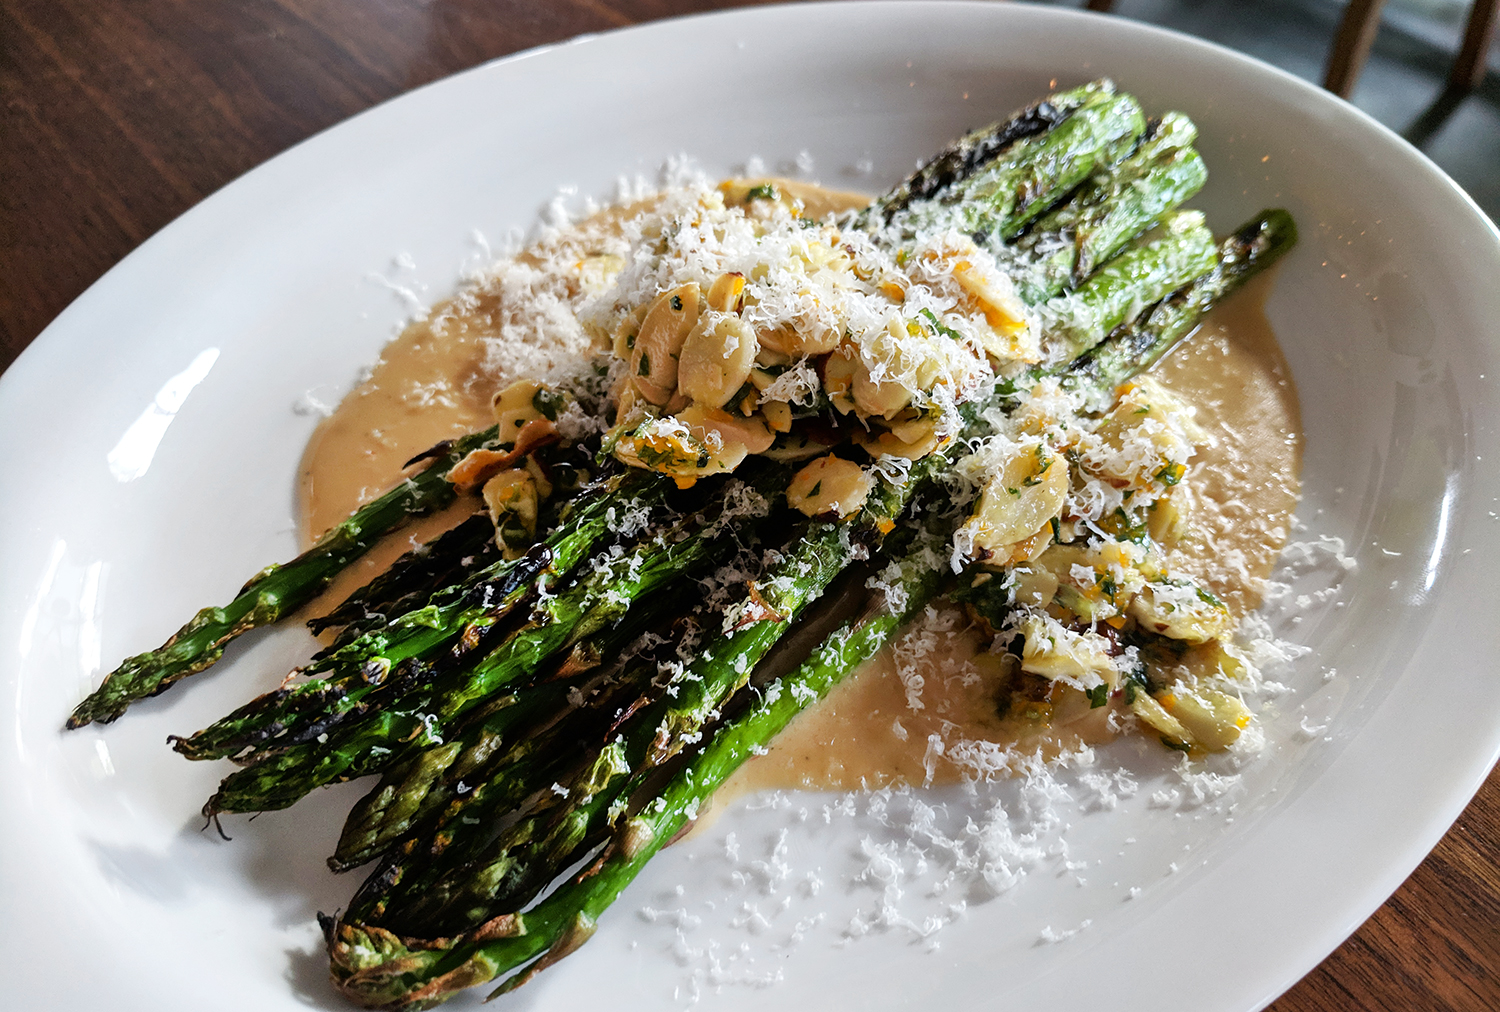 05portland-coopershall-winery-taproom-travel-food-asparagus